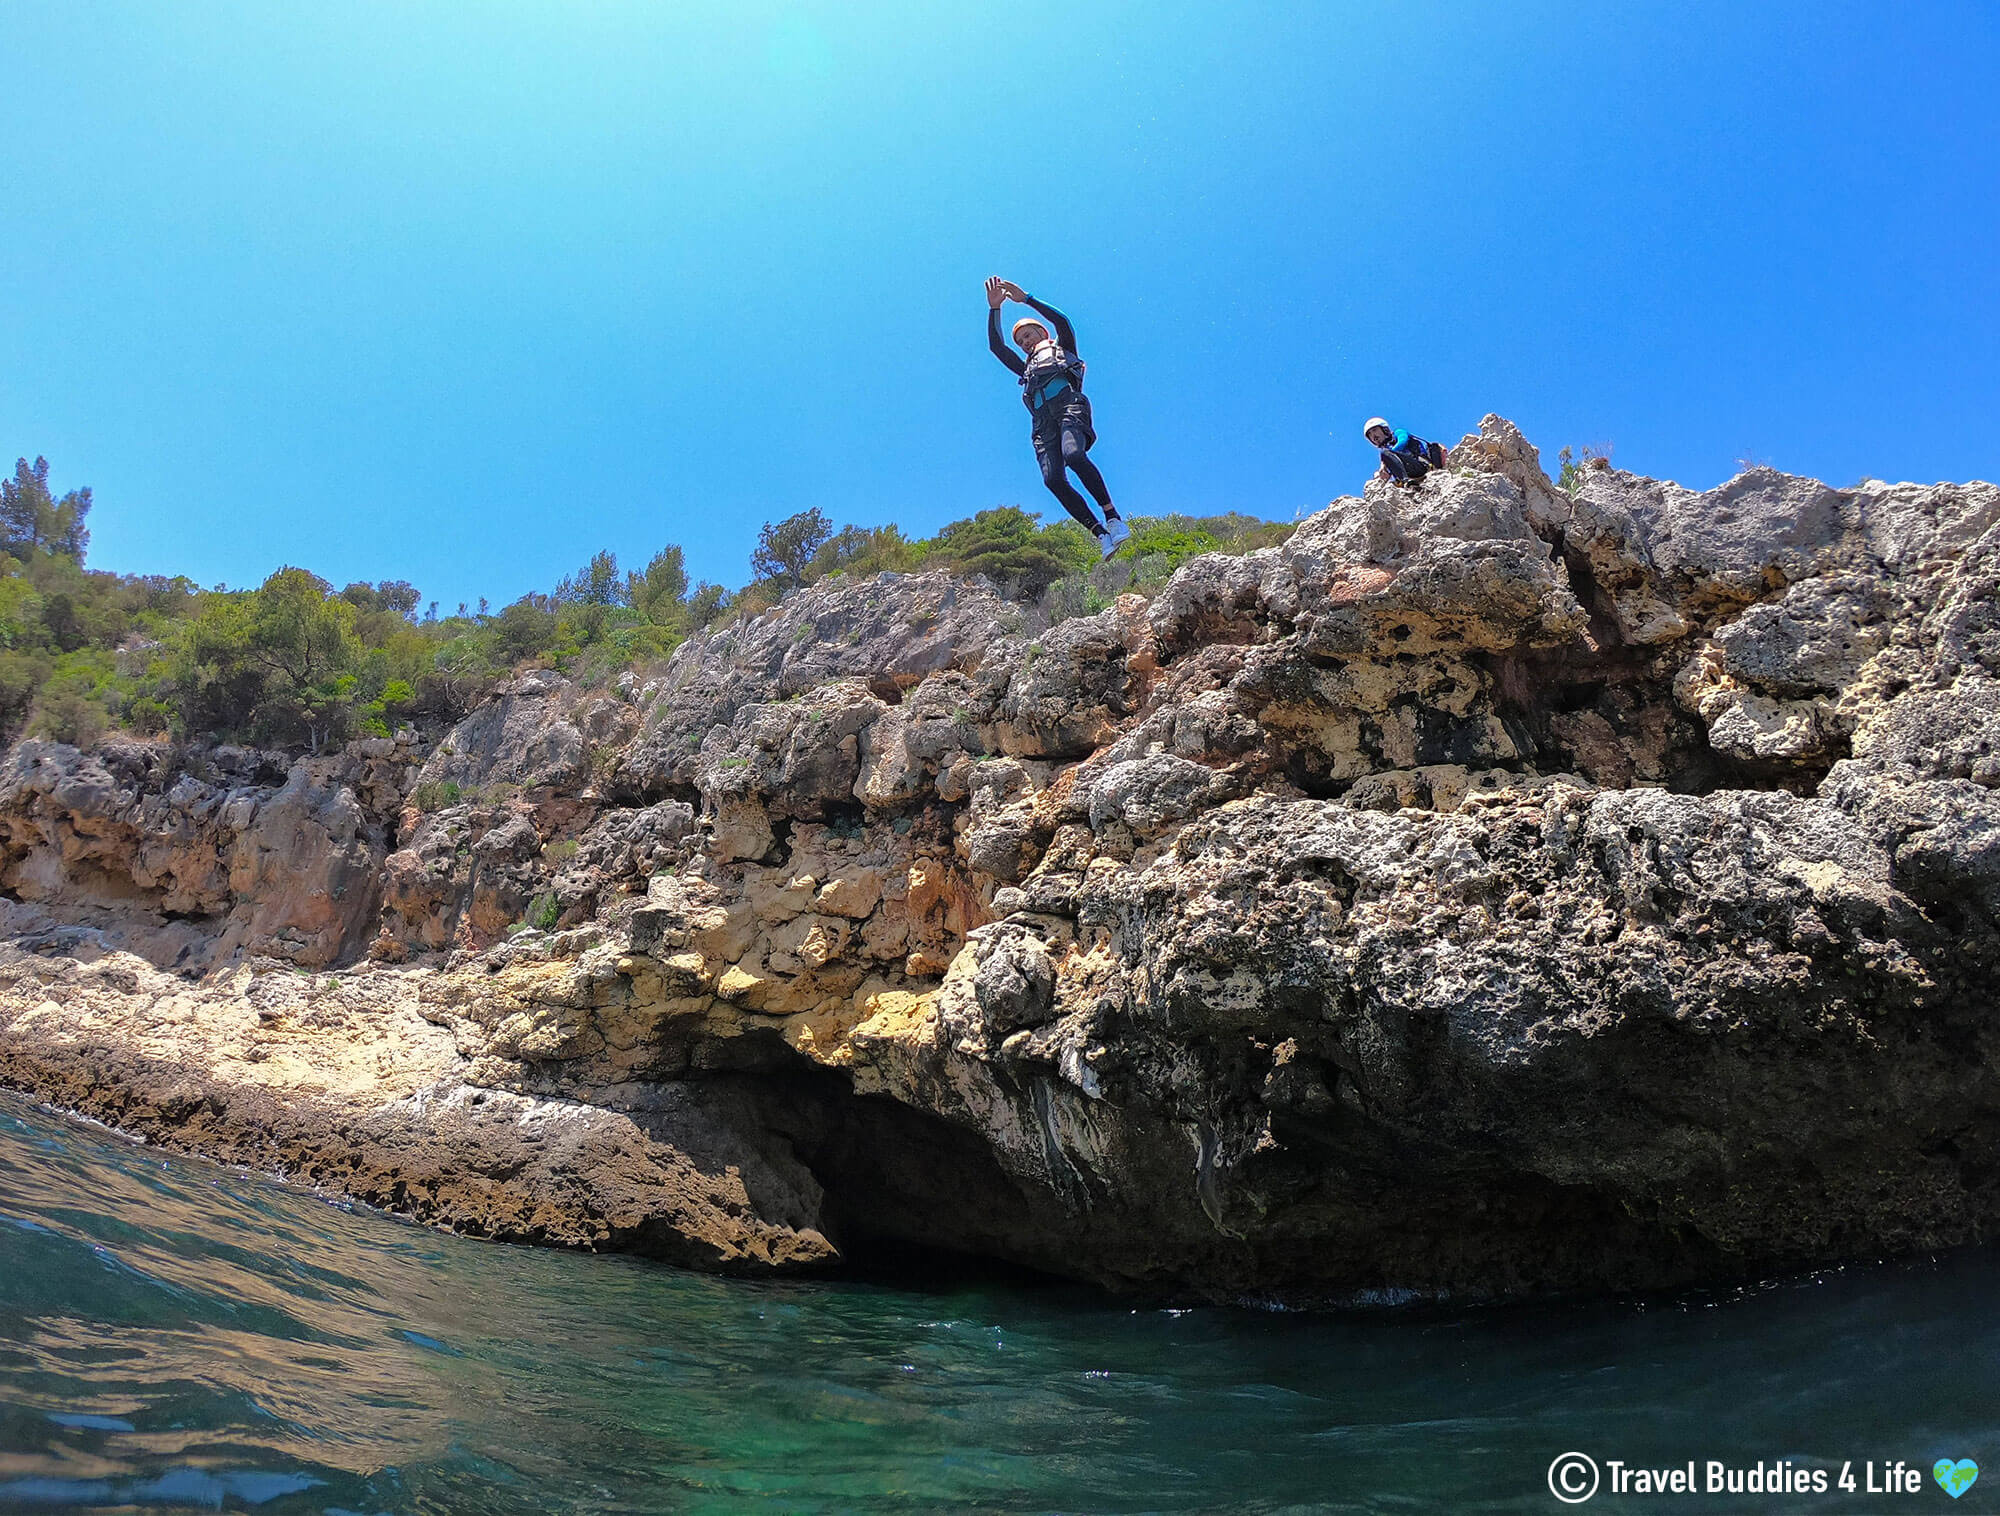 Joey Jumping from the Top of the Cliff on our Coasteering Adventure in Portugal